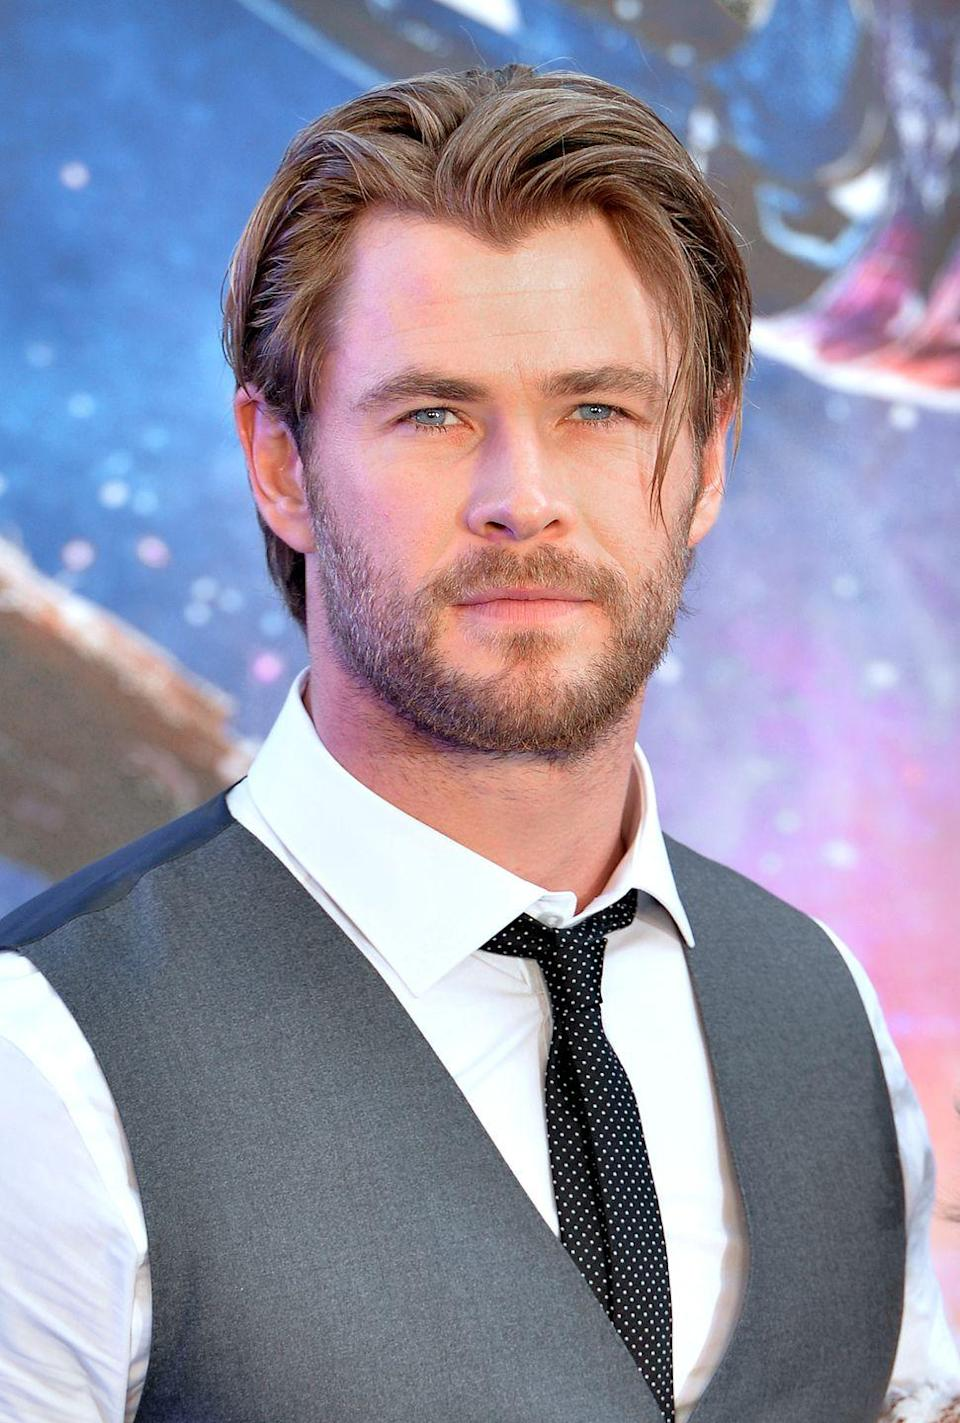 <p>This Korean invasion action film didn't do well domestically or abroad. Chris Hemsworth is currently crying into the buckets of gold he earned playing Thor.</p>